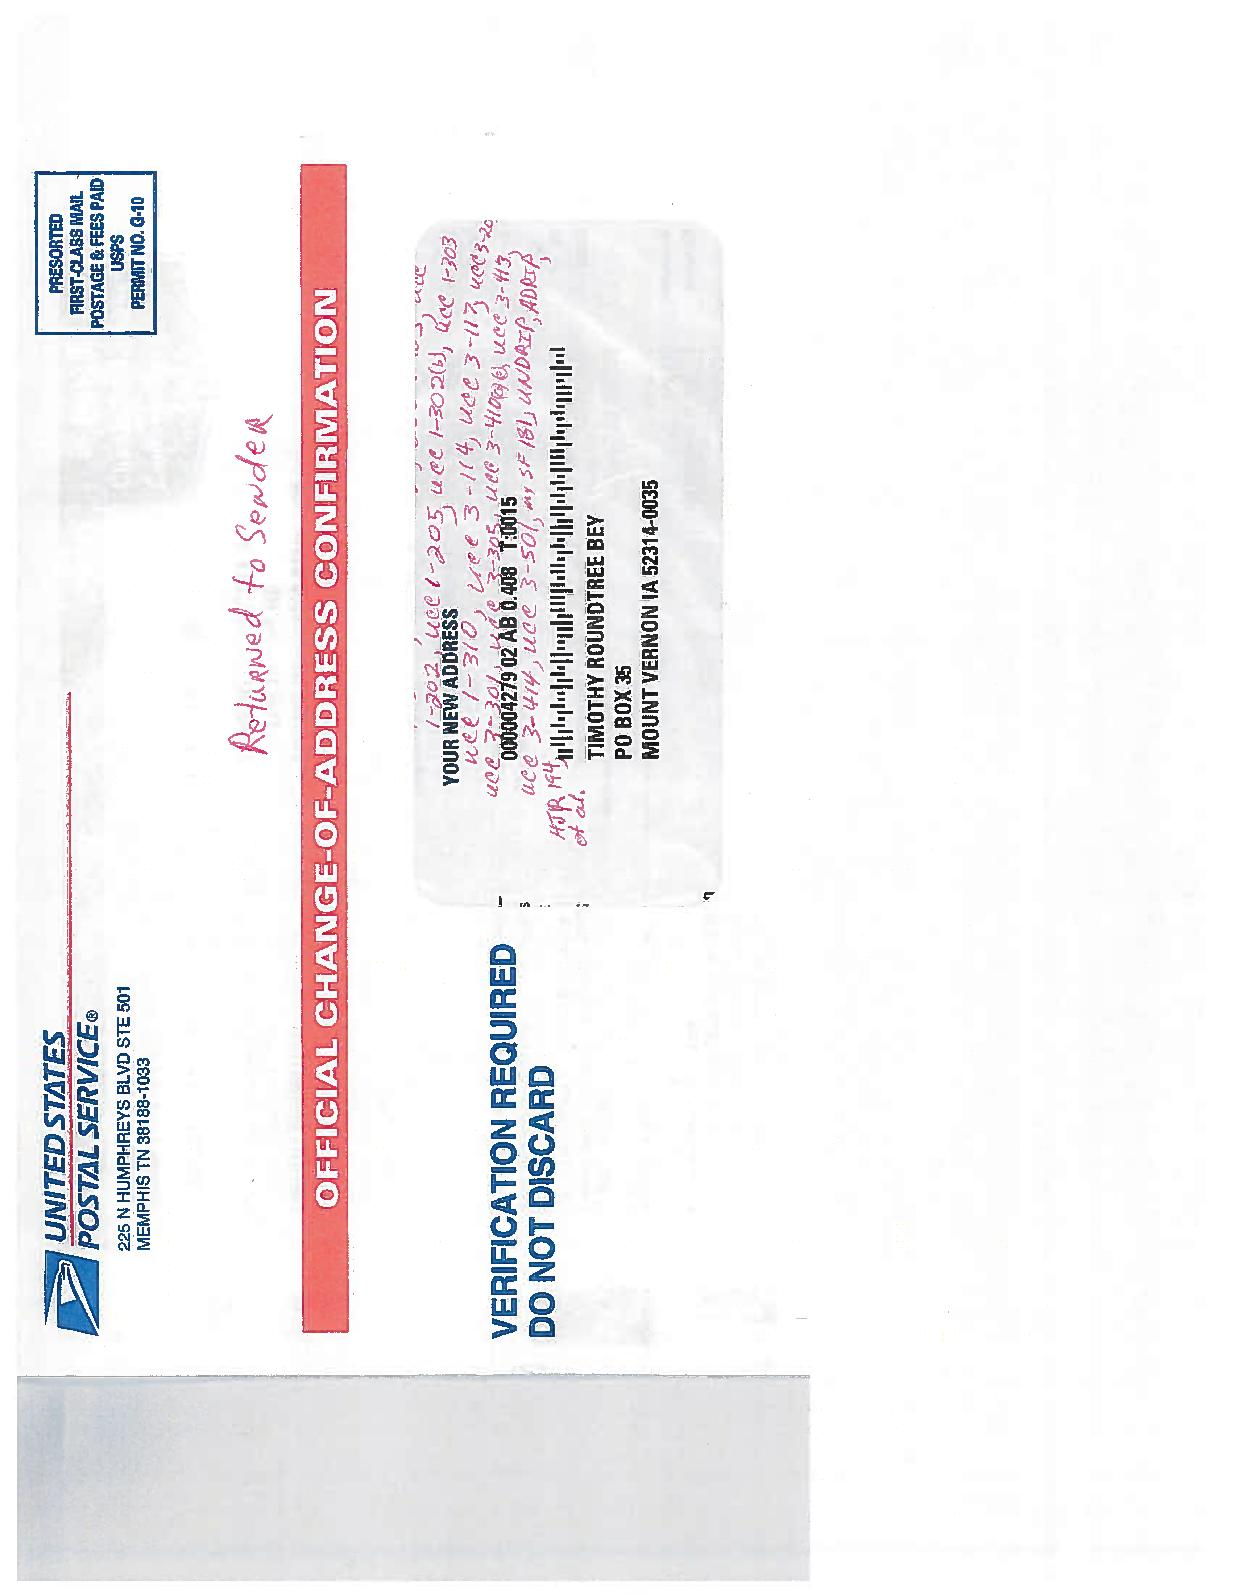 Calaméo - the UNITED STATES POSTAL SERVICE tender/document